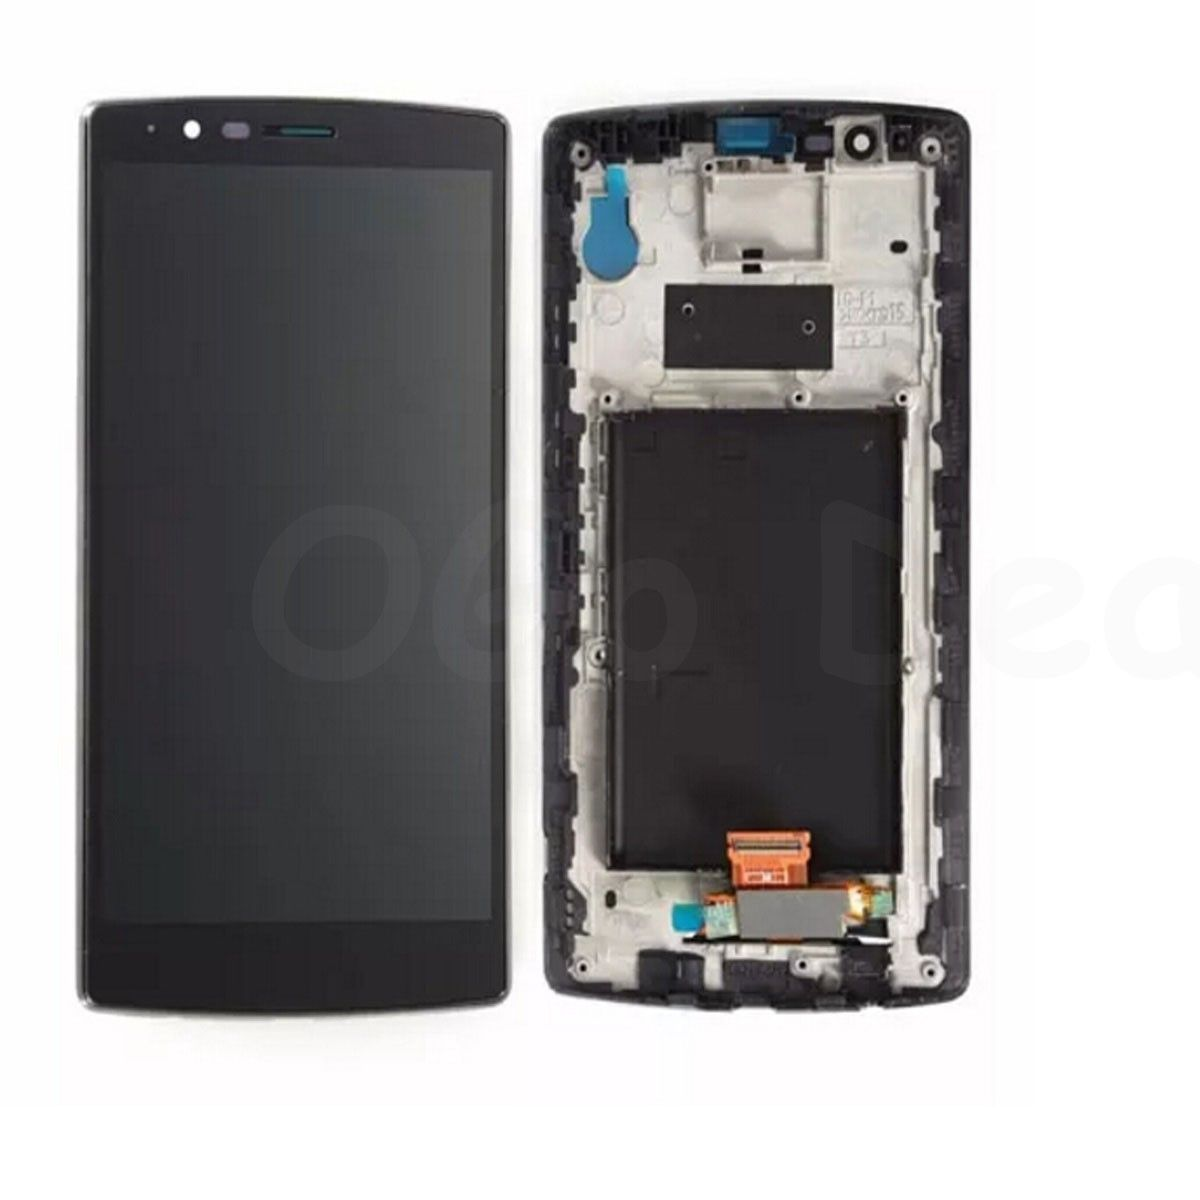 Wholesale LG G4 LCD Screen and Digitizer Assembly With Frame Replacement Replacement - Black - Ogo Deal #lg #g4 #lcd #wholesale @ http://www.ogodeal.com/for-lg-g4-lcd-screen-and-digitizer-assembly-with-frame-replacement-black.html